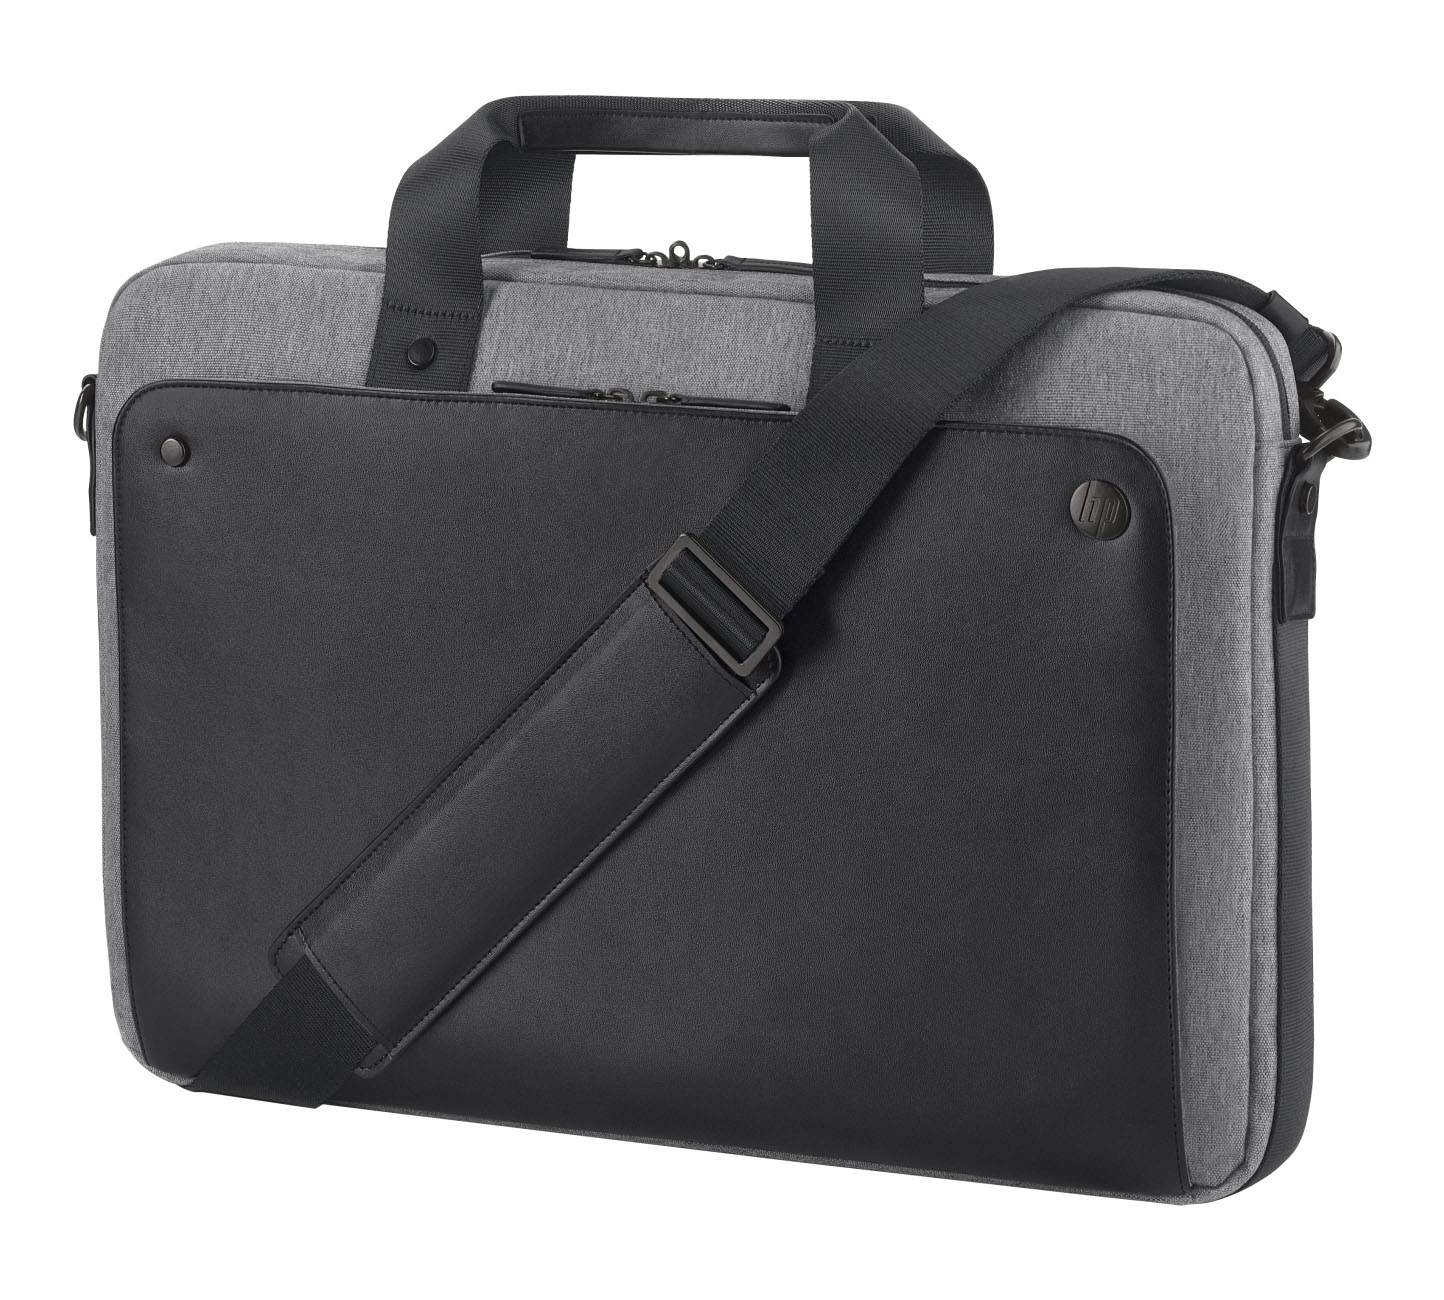 "HP Executive with Leather Notebook Slim TopLoad 14.0""-15.6"" + Tablet Case + RFID & HP Tracking Device Pocket P6N20AA"